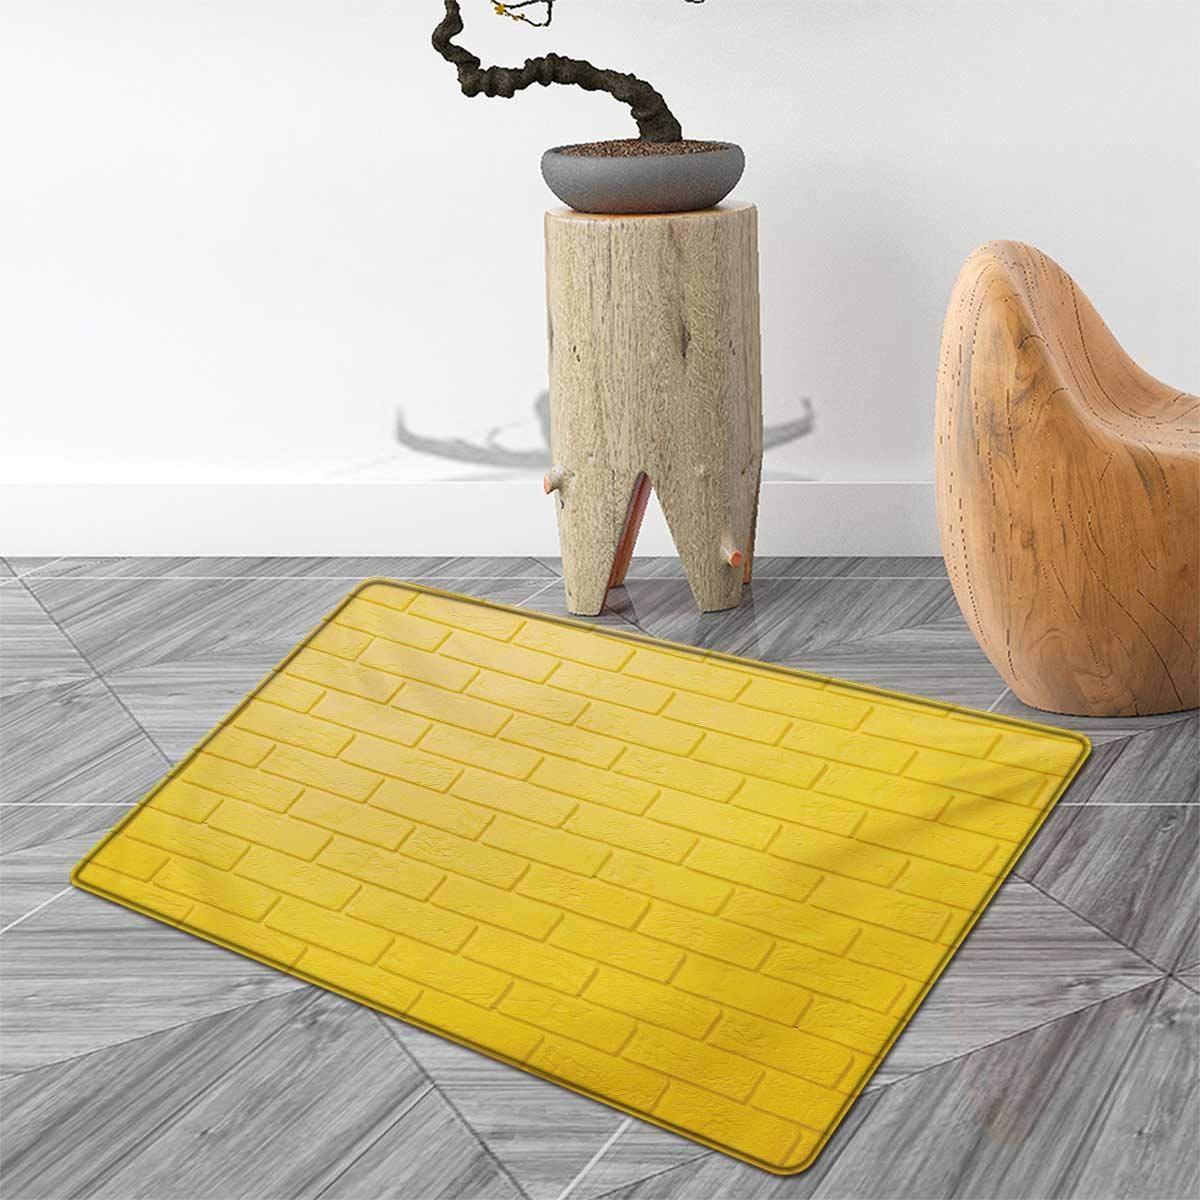 Mustard Door Mat Indoors Monochrome Brick Wall Urban Concept Modern Stylized Abstract City Life Picture Customize Bath Mat with Non Slip Backing 2'x3' Earth Yellow